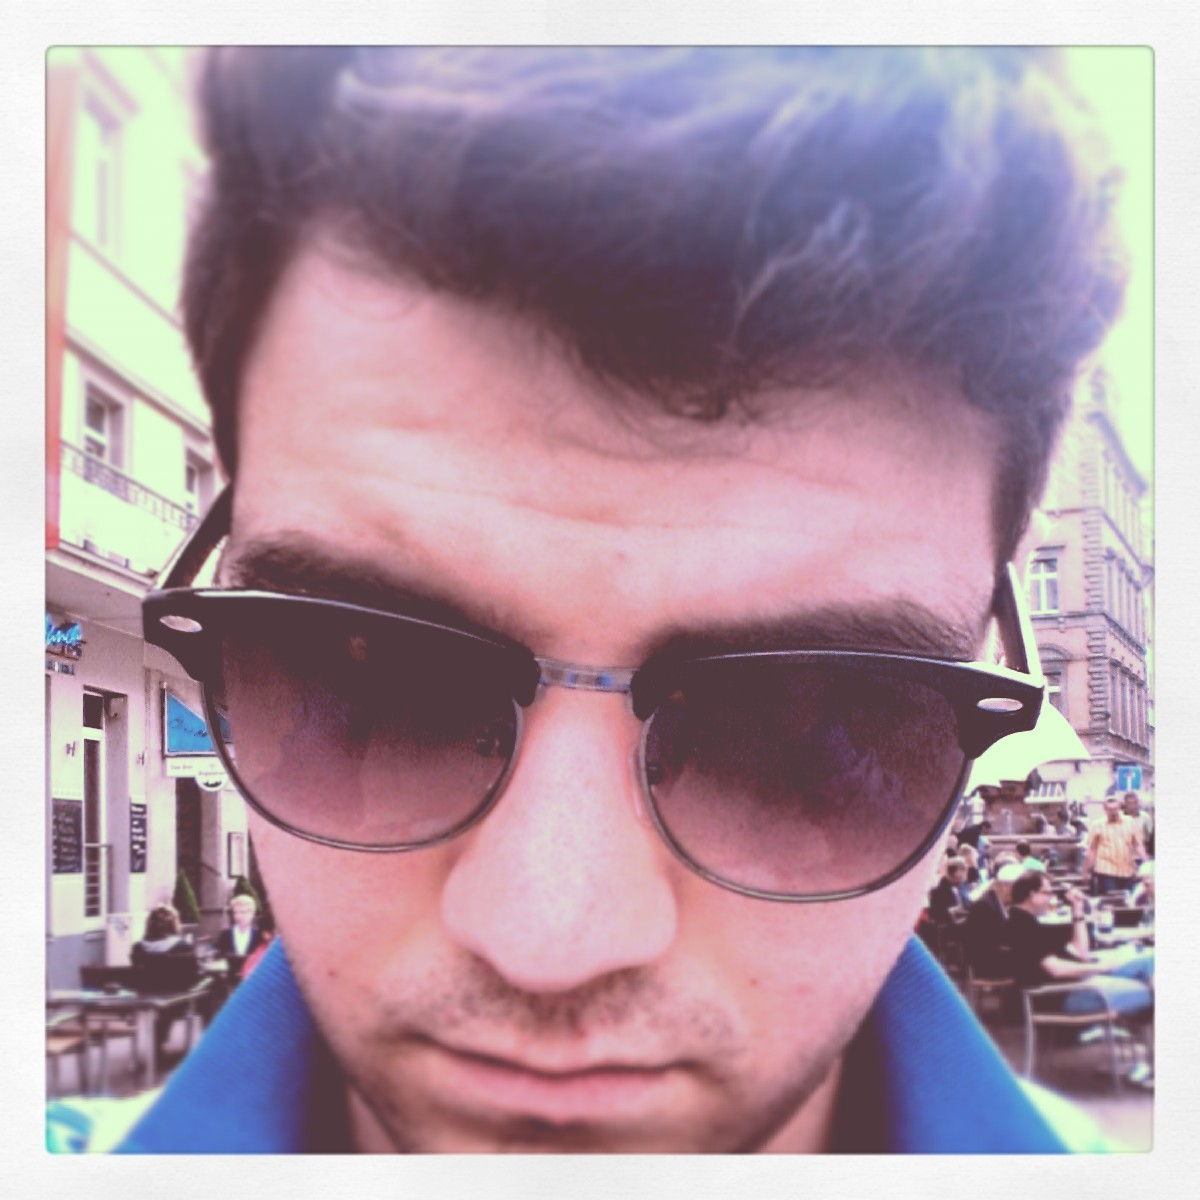 #indie #hipster #vintage #sunglasses #germany #konstanz #boy